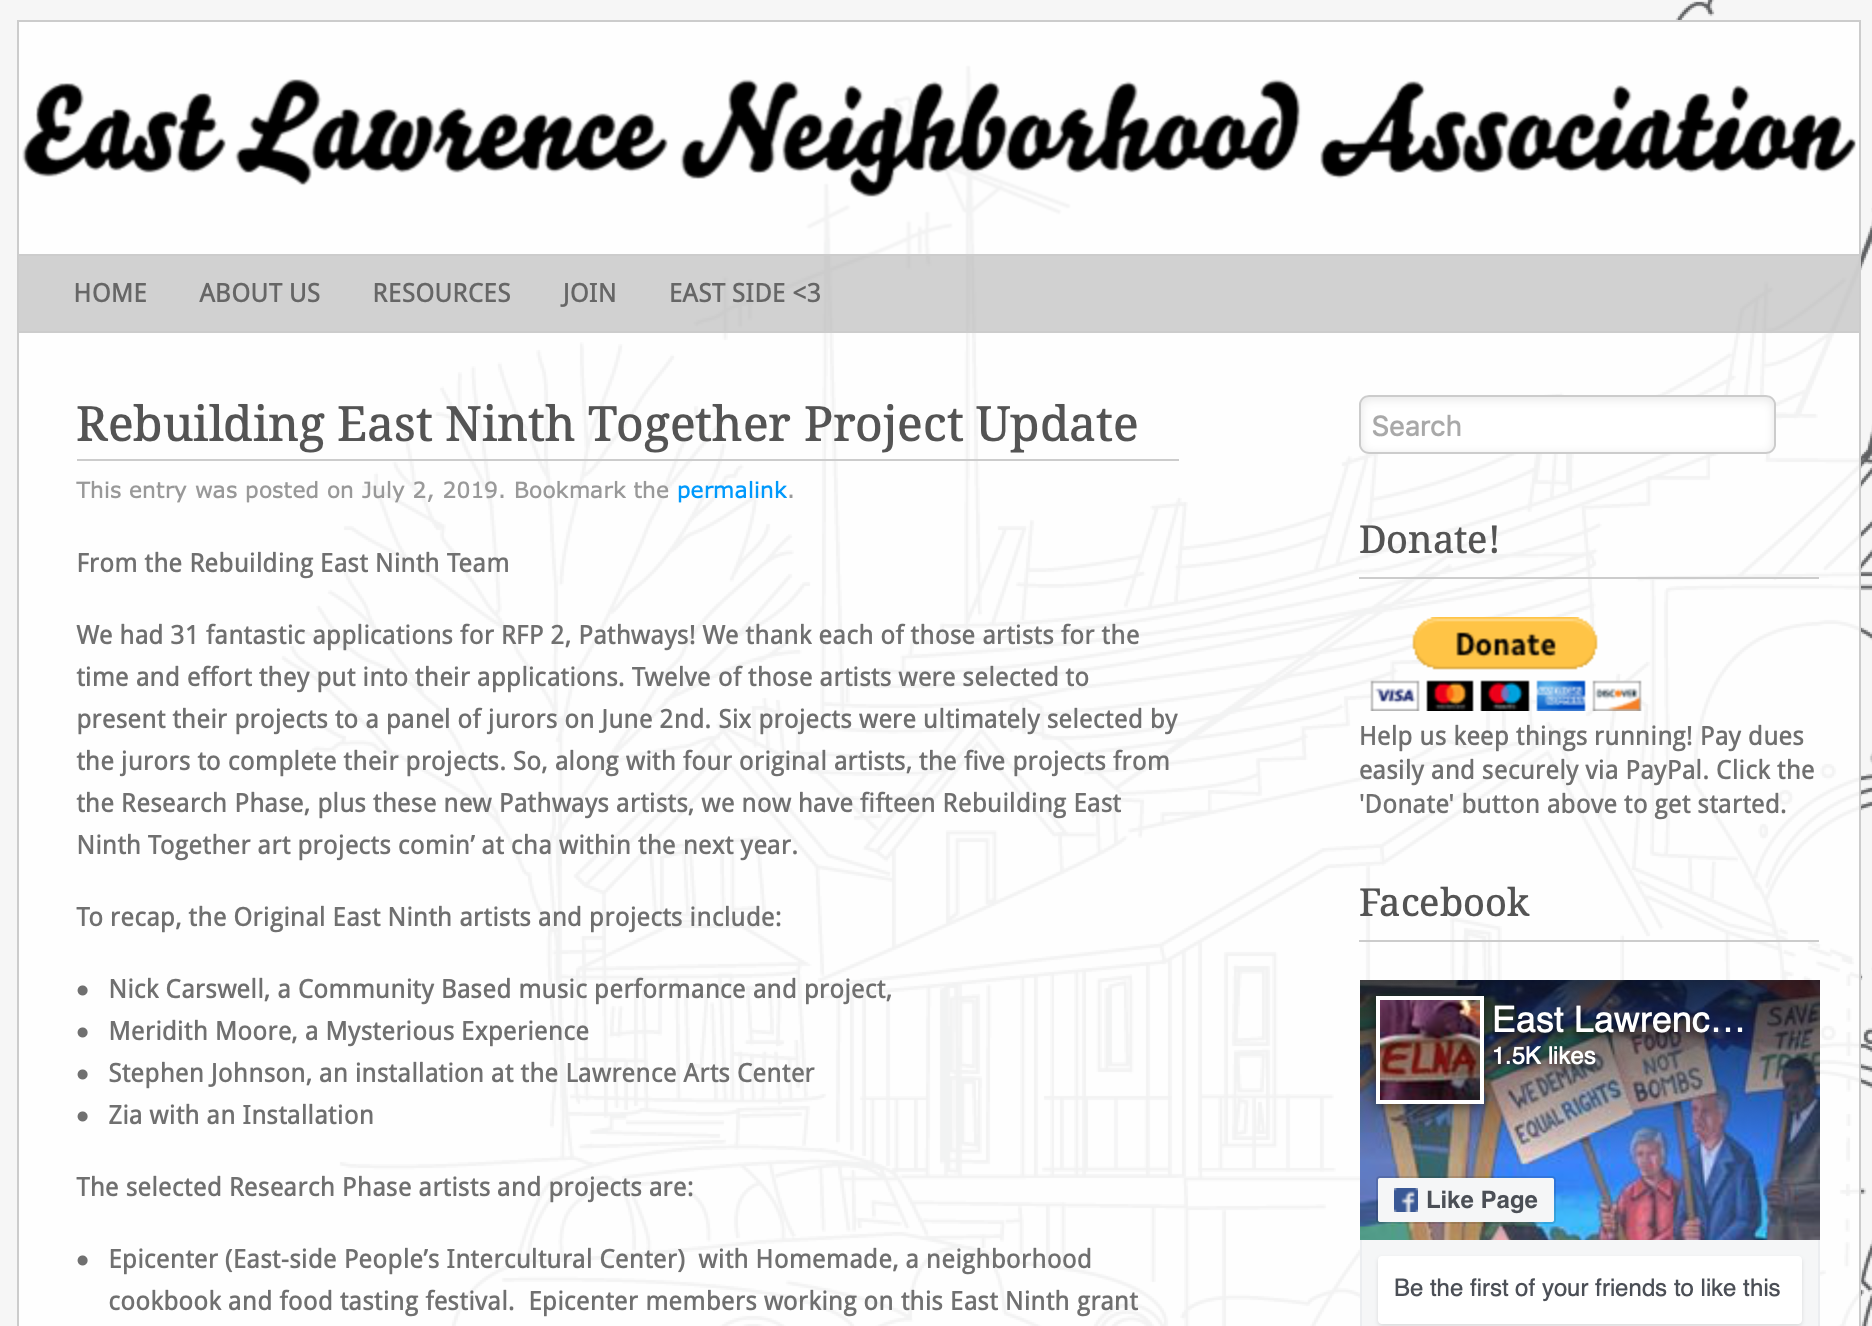 east Lawrence neighborhood association